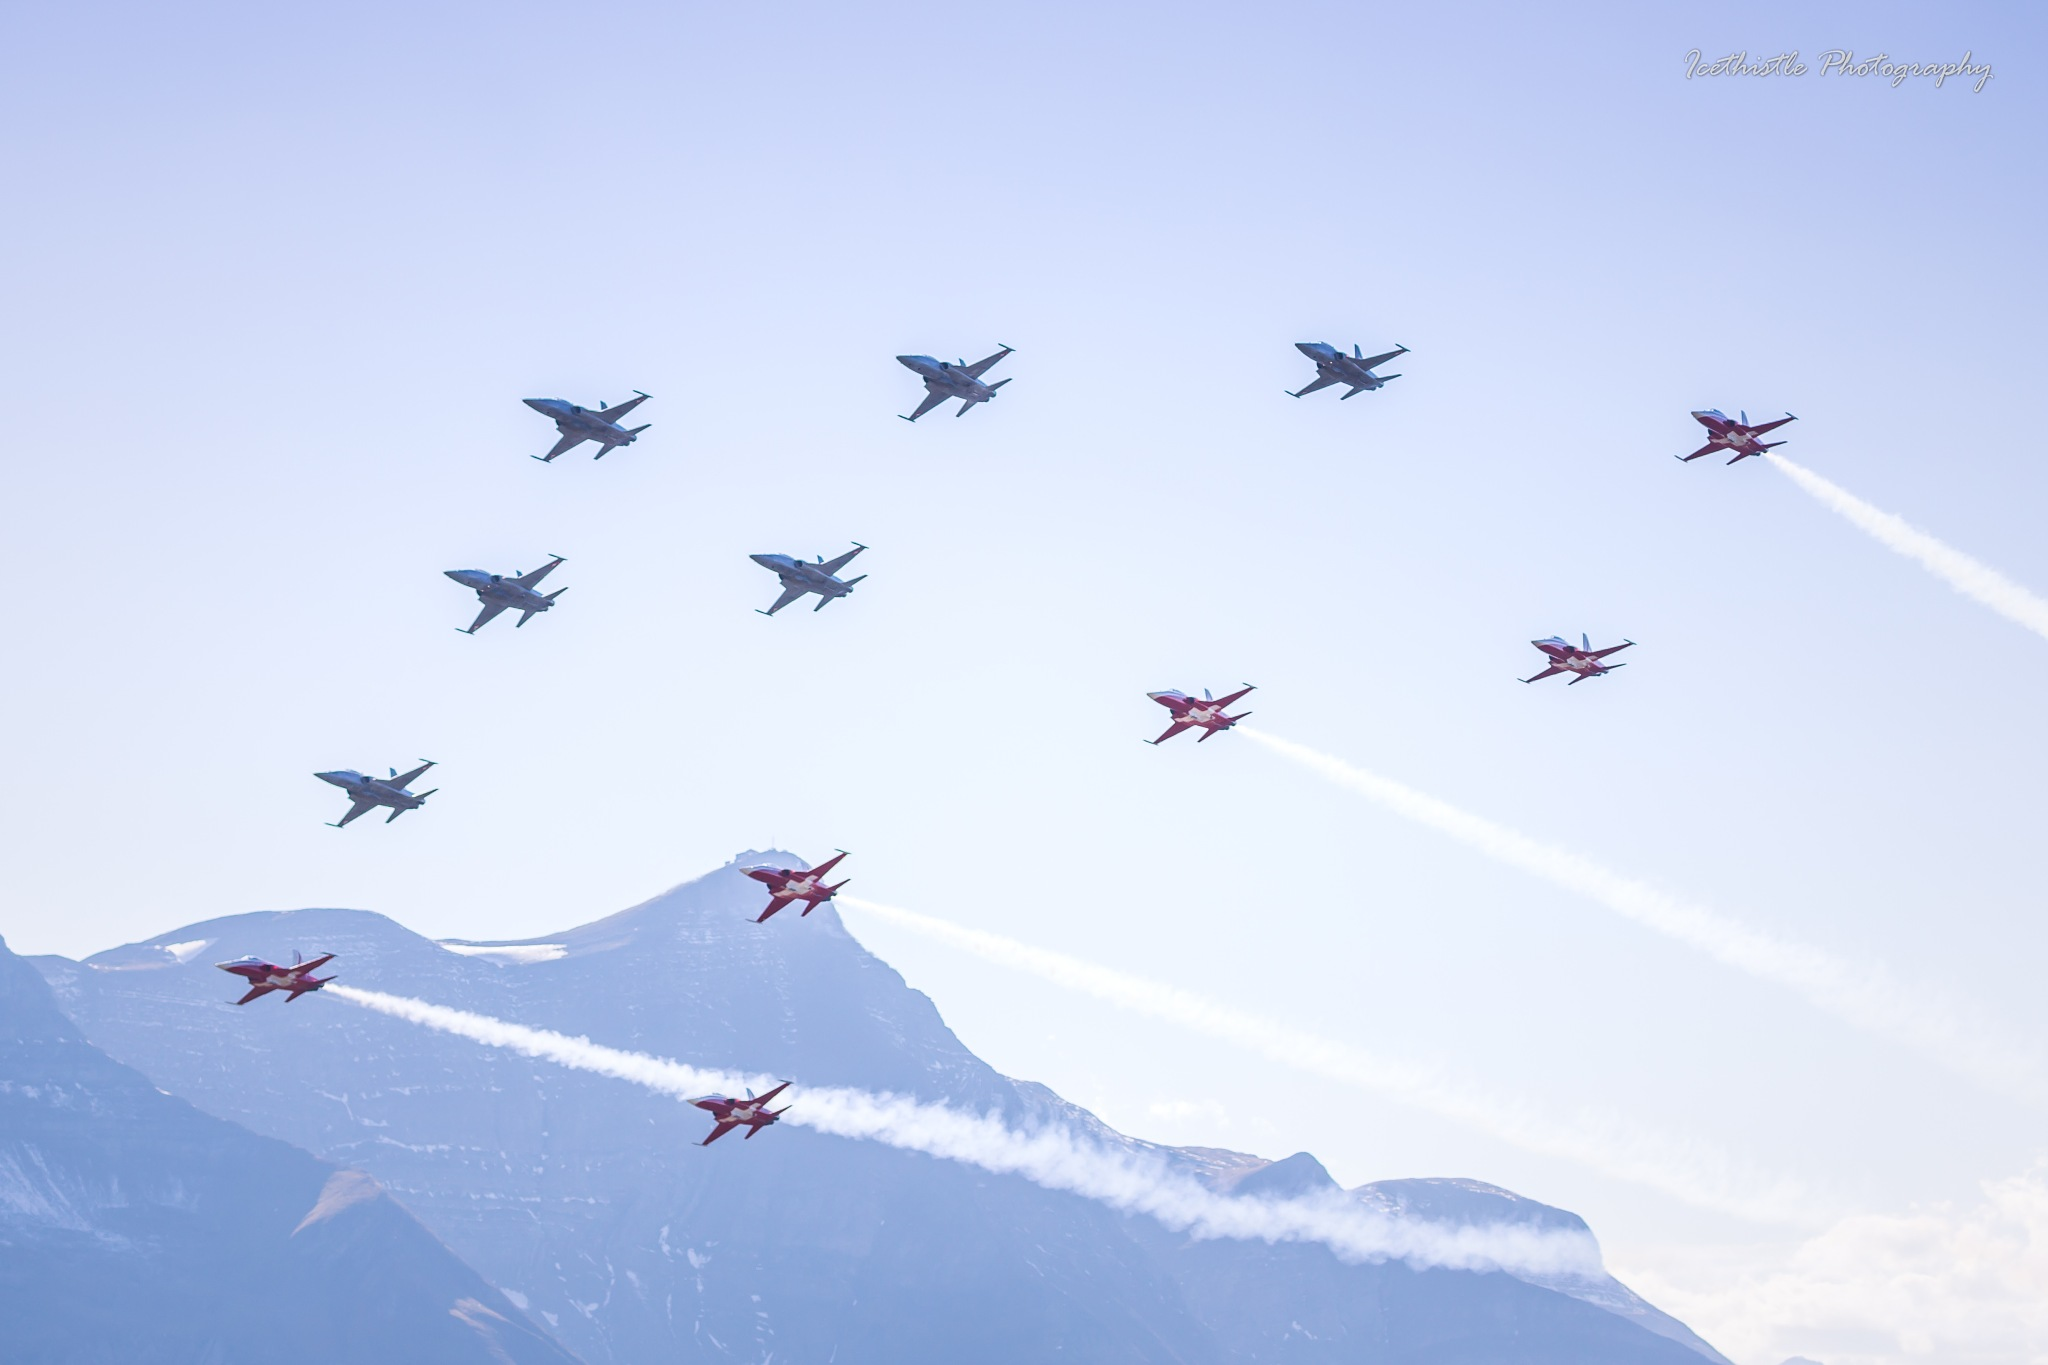 In Formation by Icethistle Photography